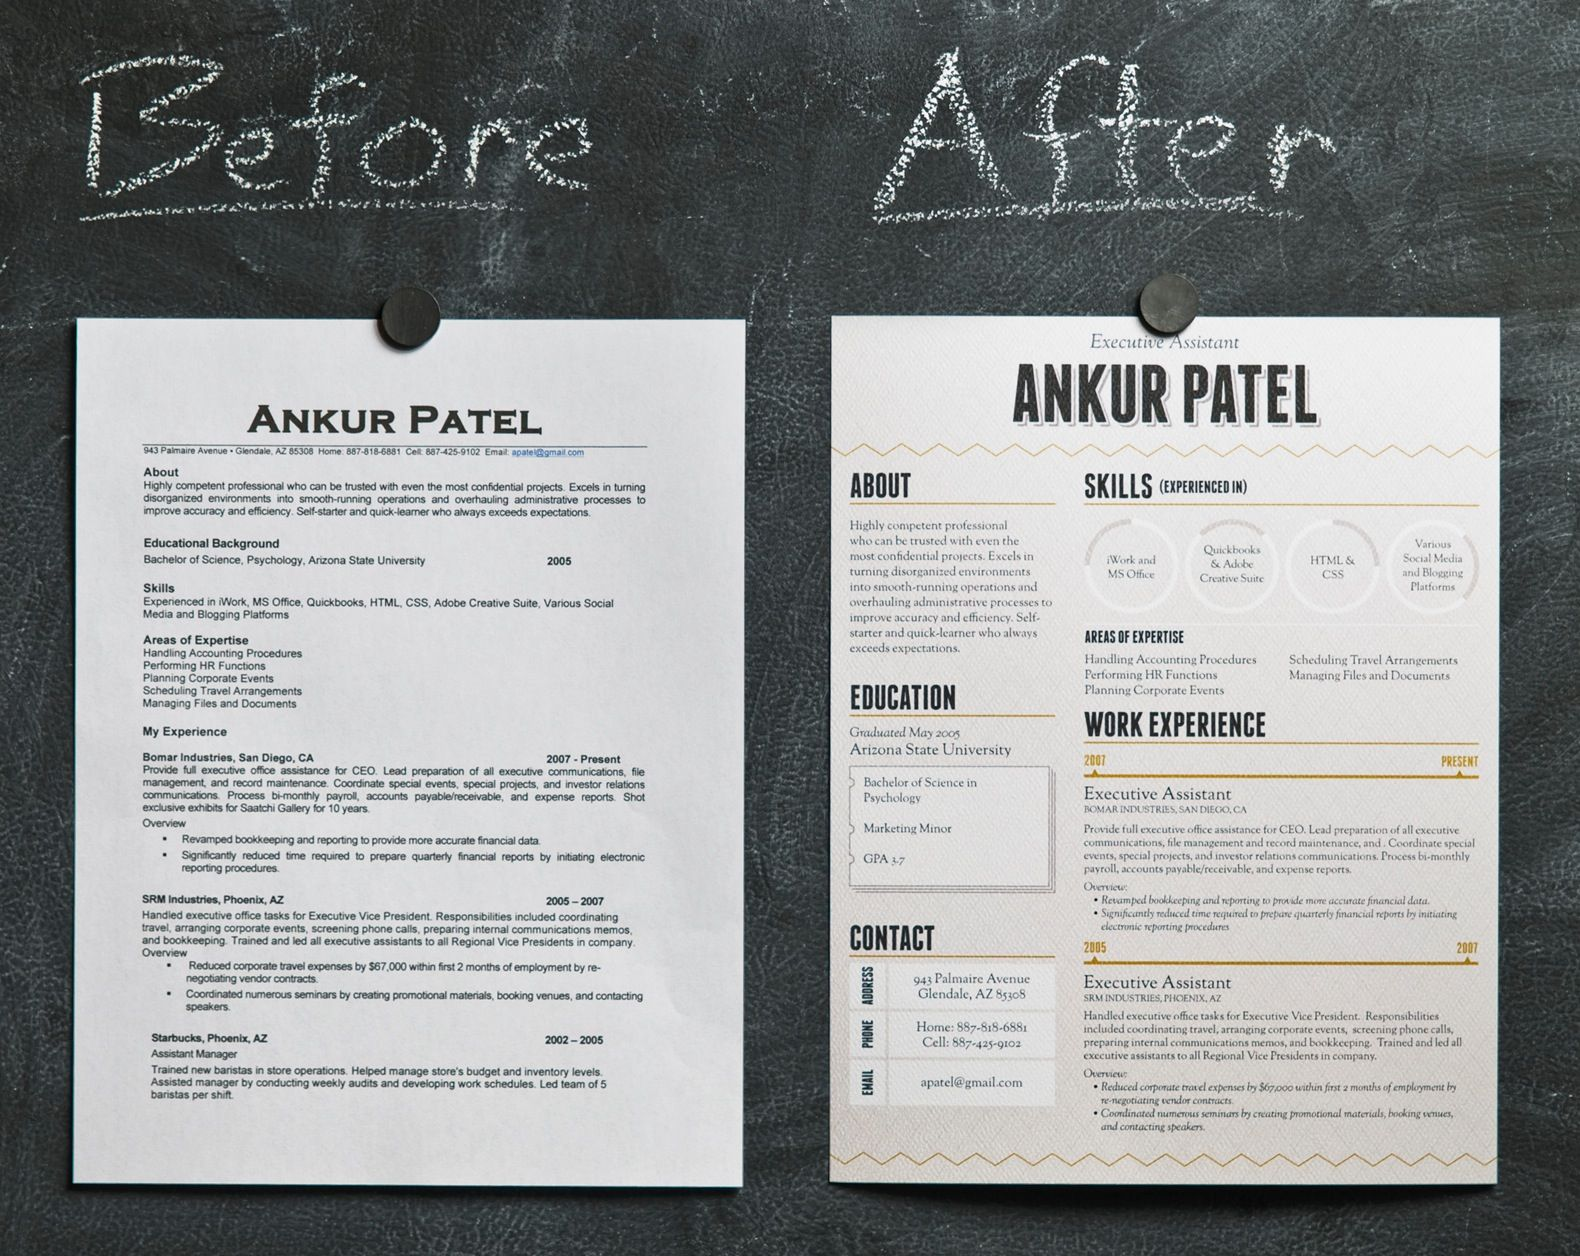 Can Beautiful Design Make Your Resume Stand Out? Resume